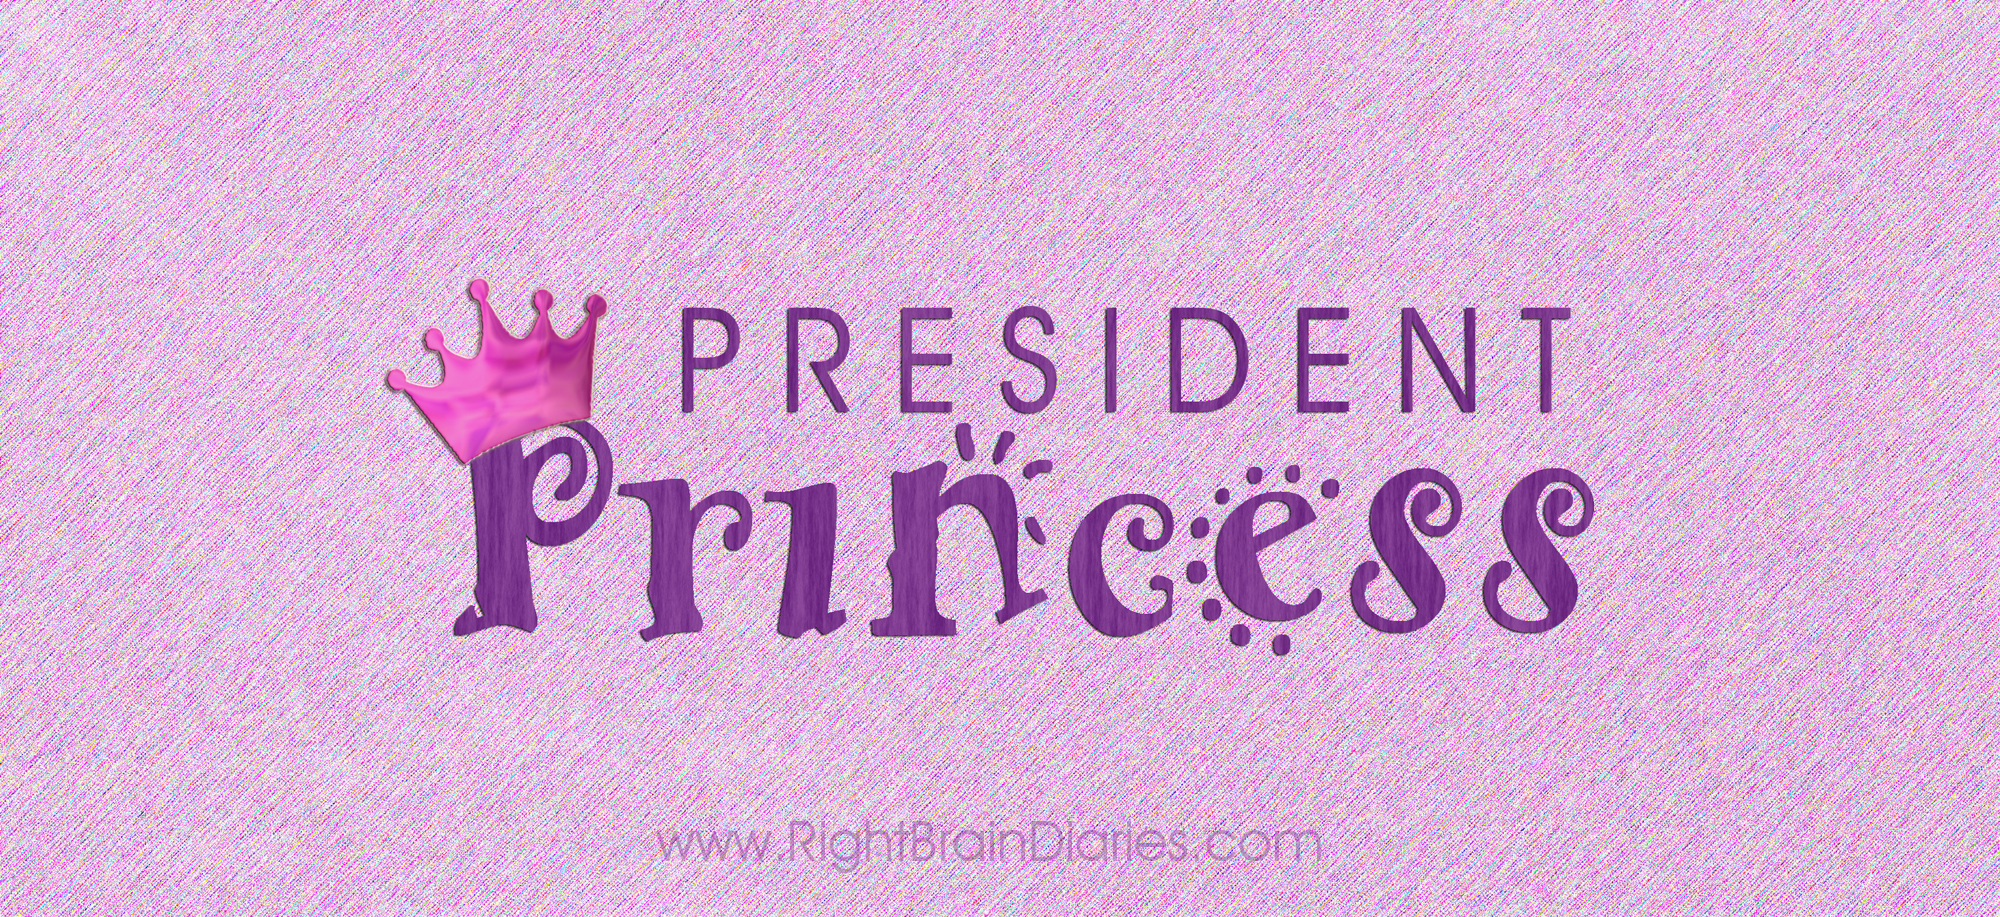 President Princess: an election fairy tale.